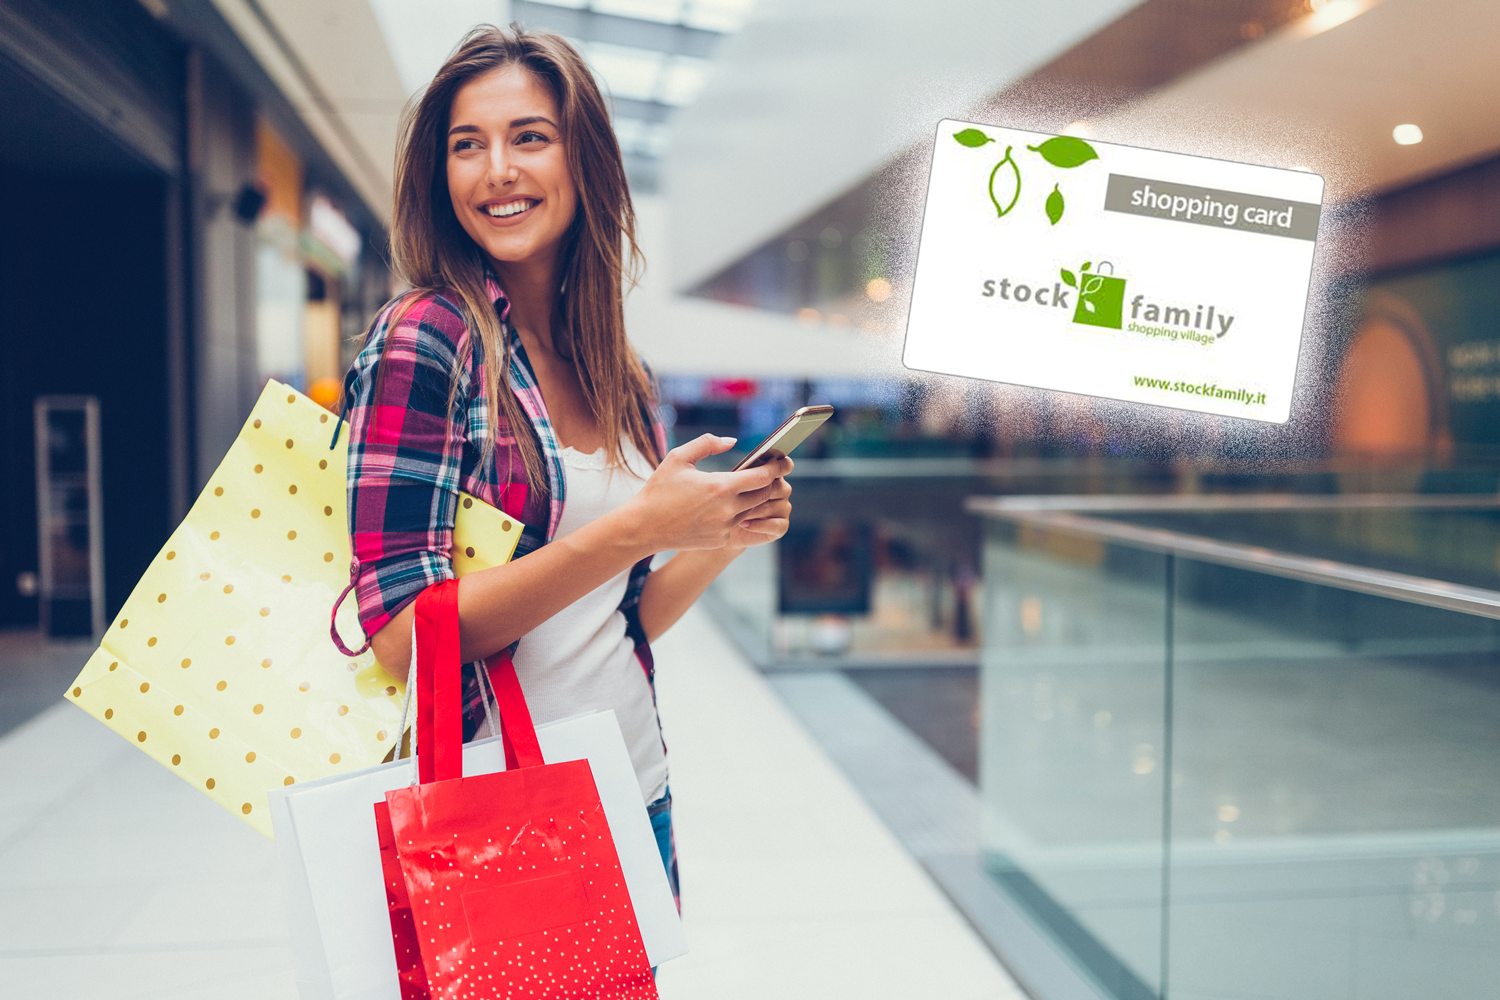 Shopping Card Stock Family Outlet